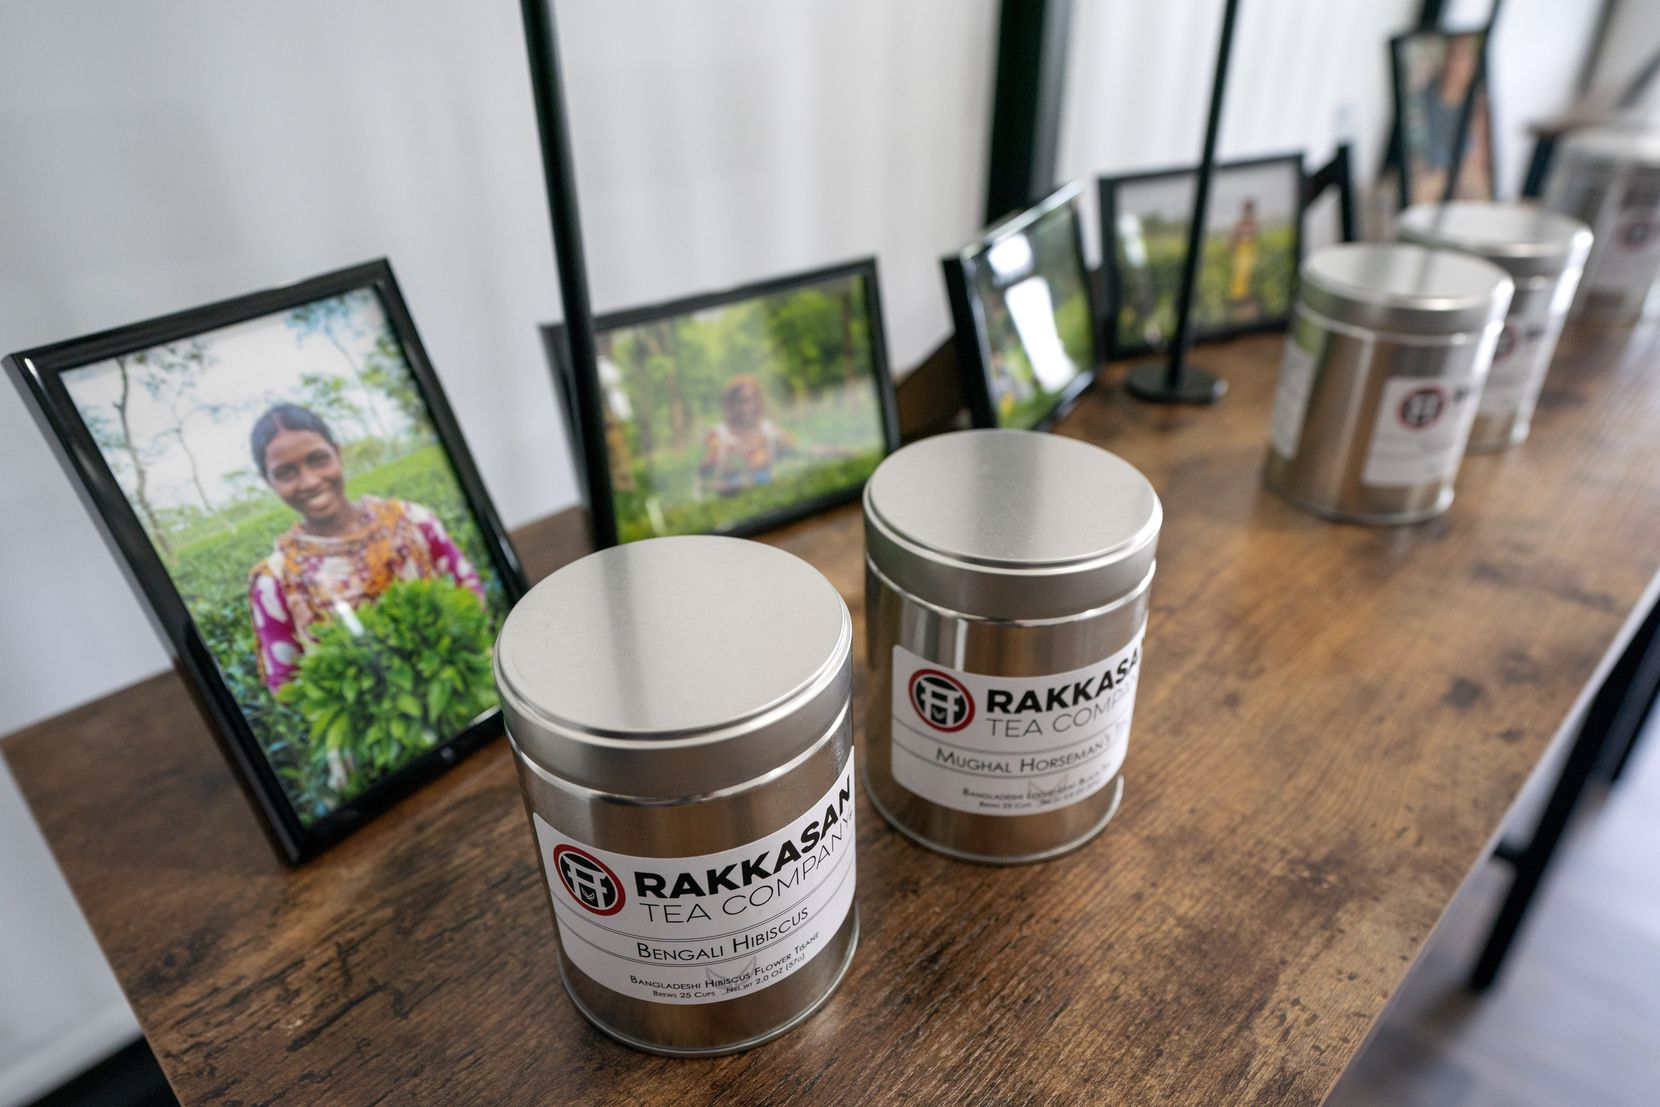 Canisters of Rakkasan Tea sit in front of photos of tea growers from the countries where the tea was sourced.